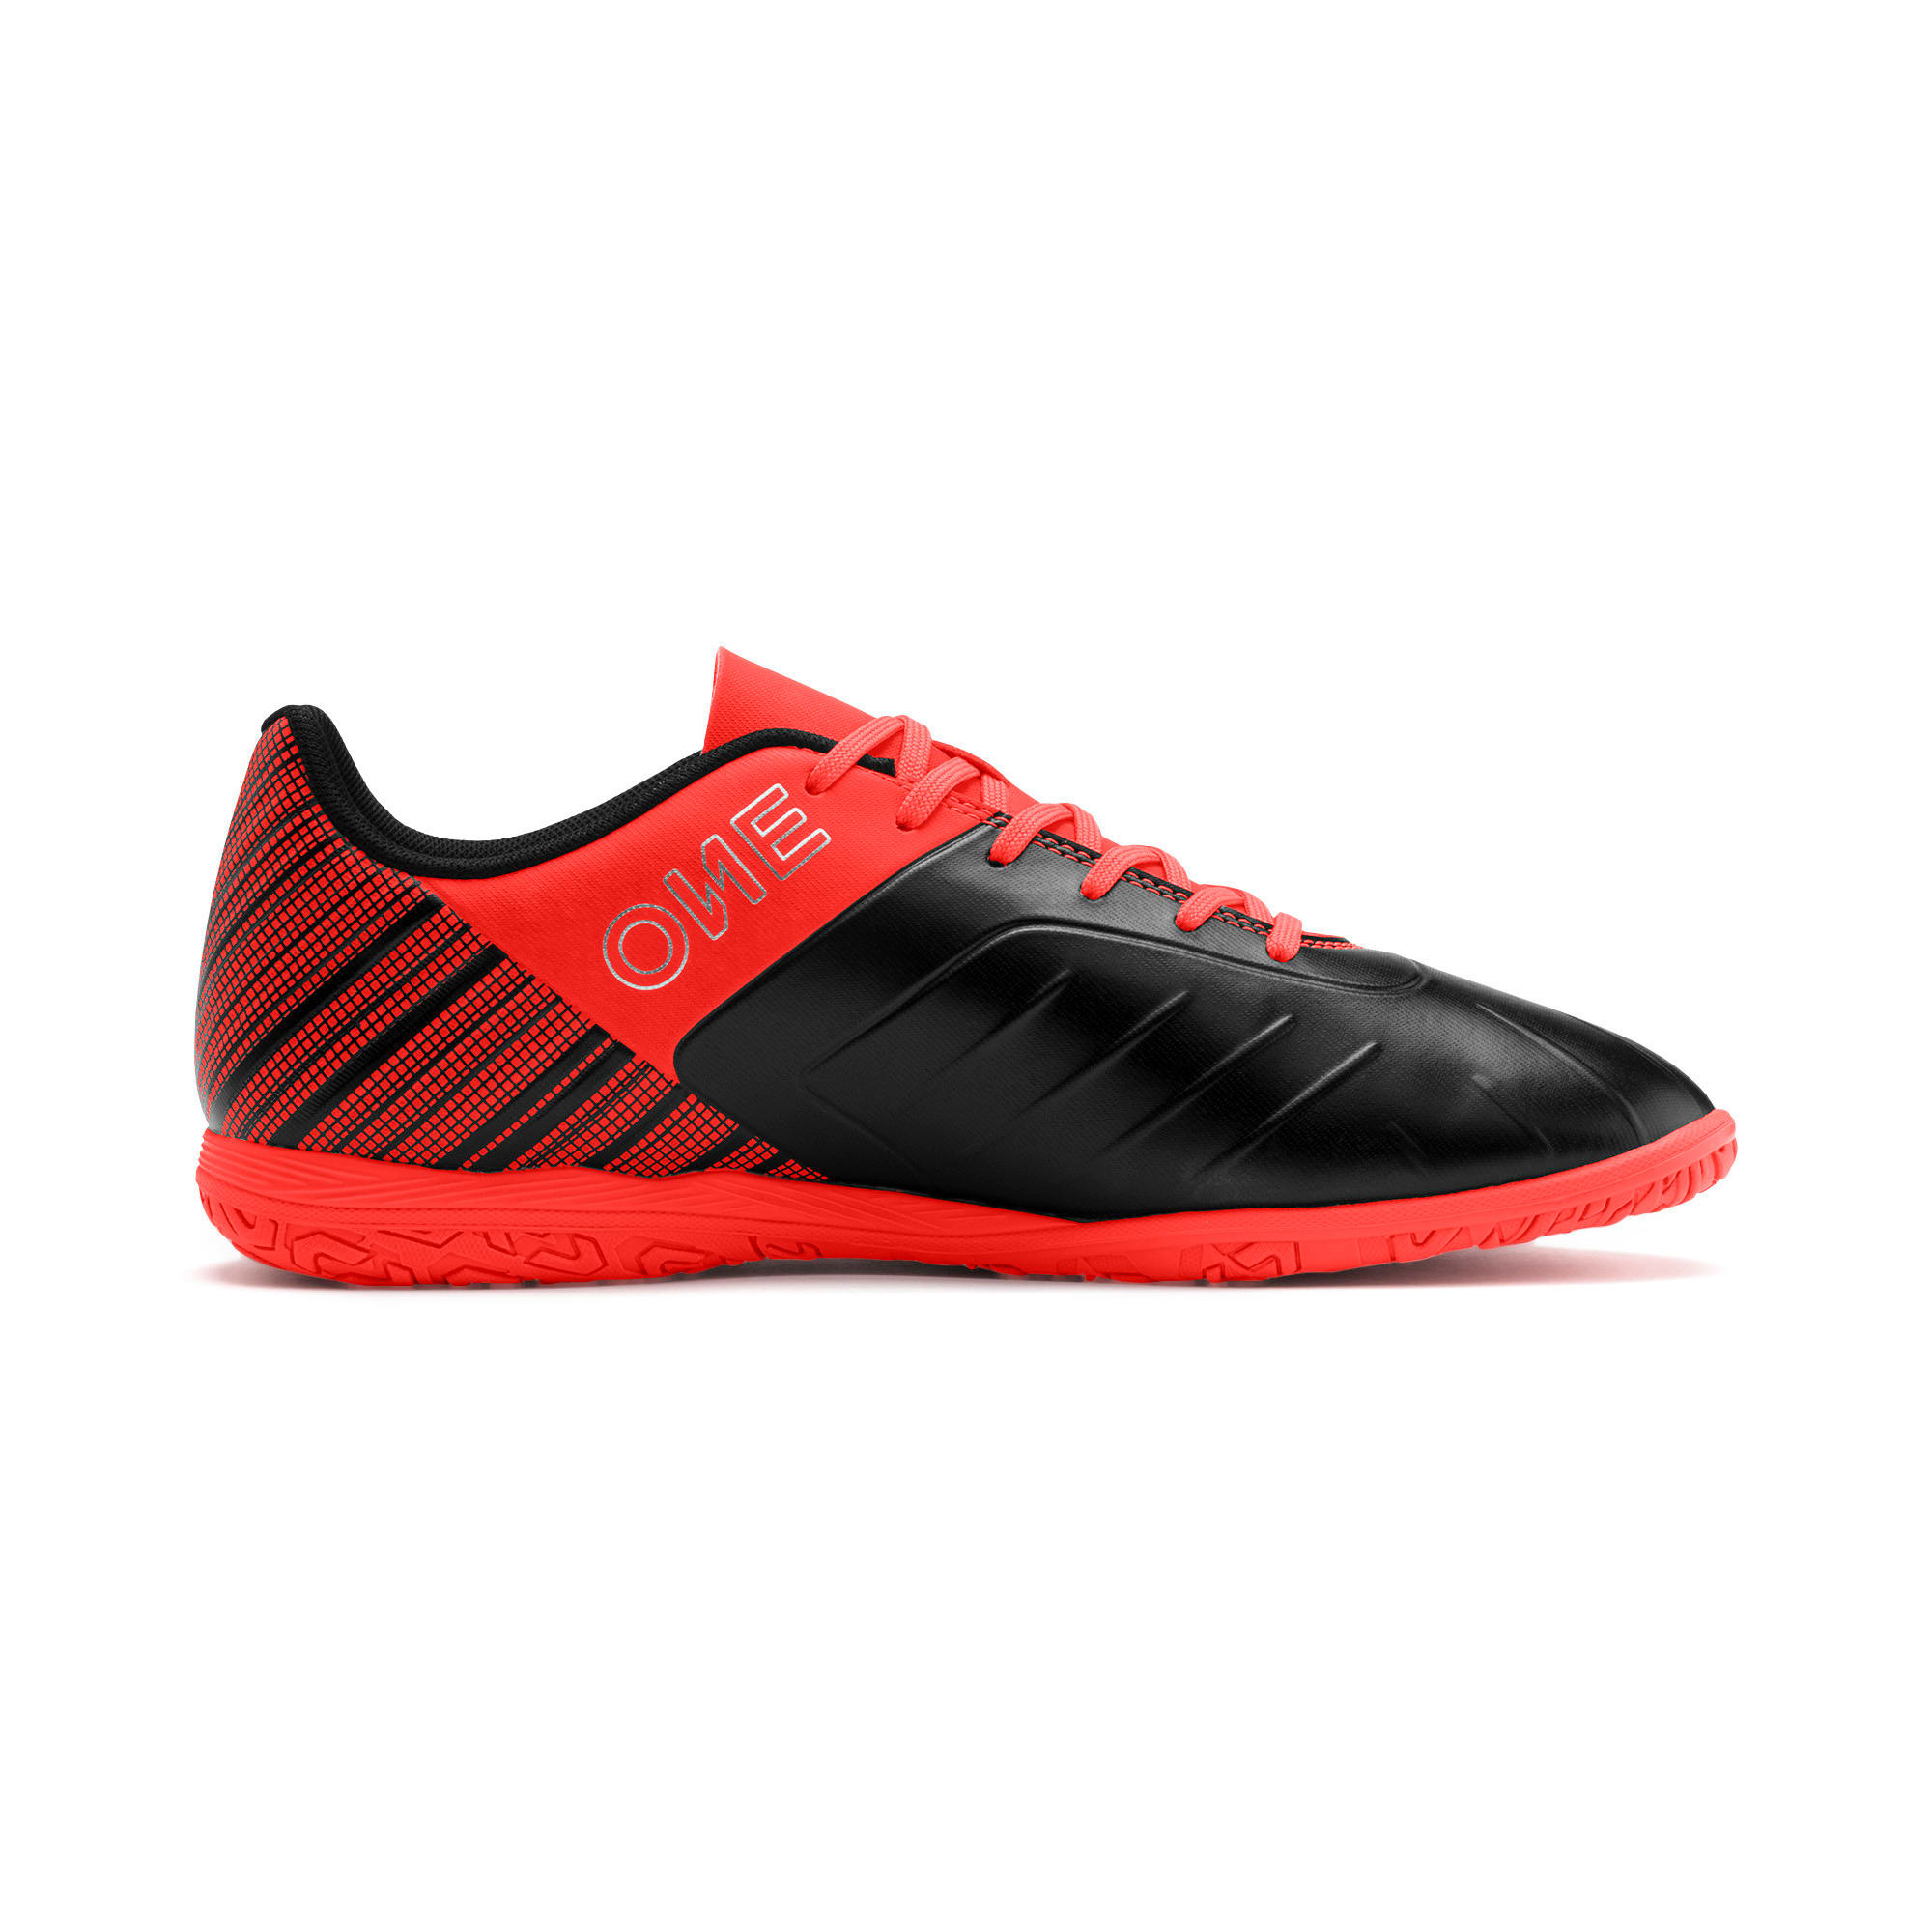 Thumbnail 6 of Chaussure de foot PUMA ONE 5.4 IT pour homme, Black-Nrgy Red-Aged Silver, medium